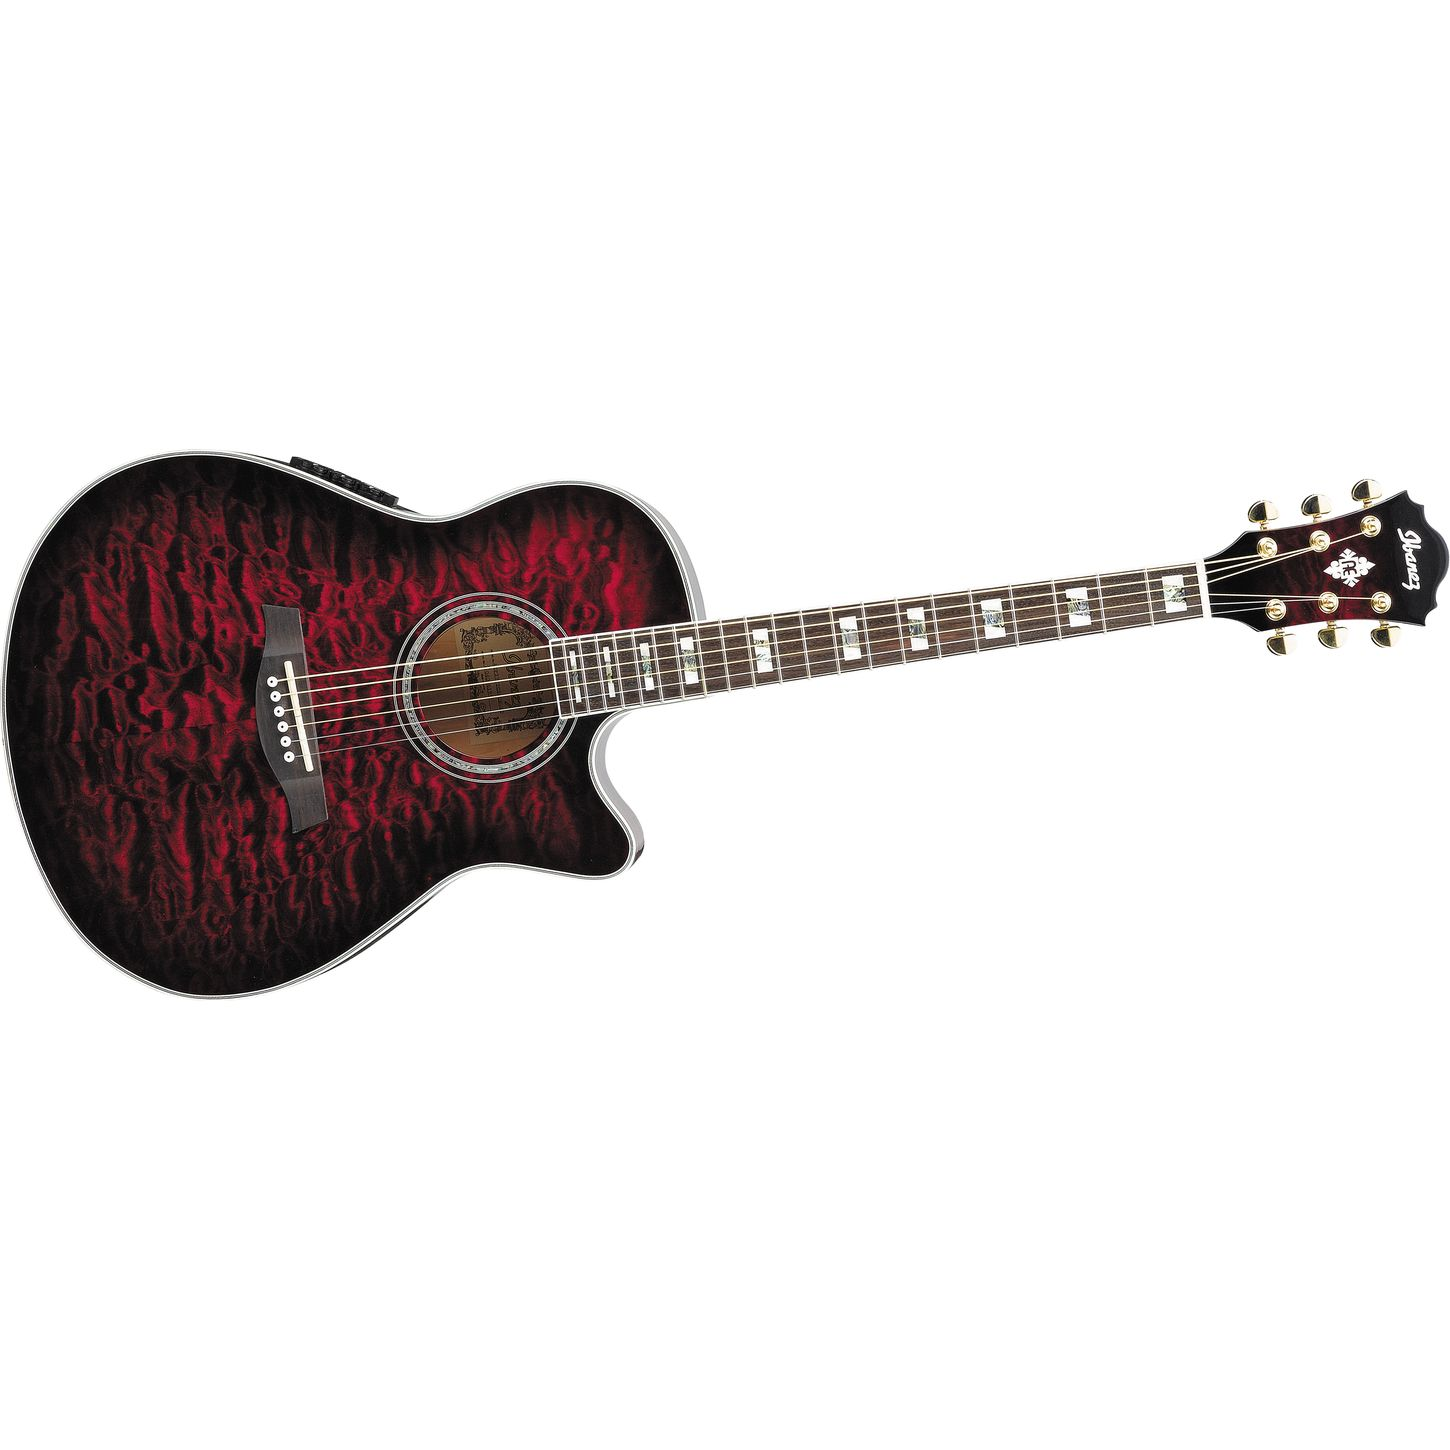 Guitar Ibanez 24414 Hd Wallpapers in Music   Imagescicom 1450x1450